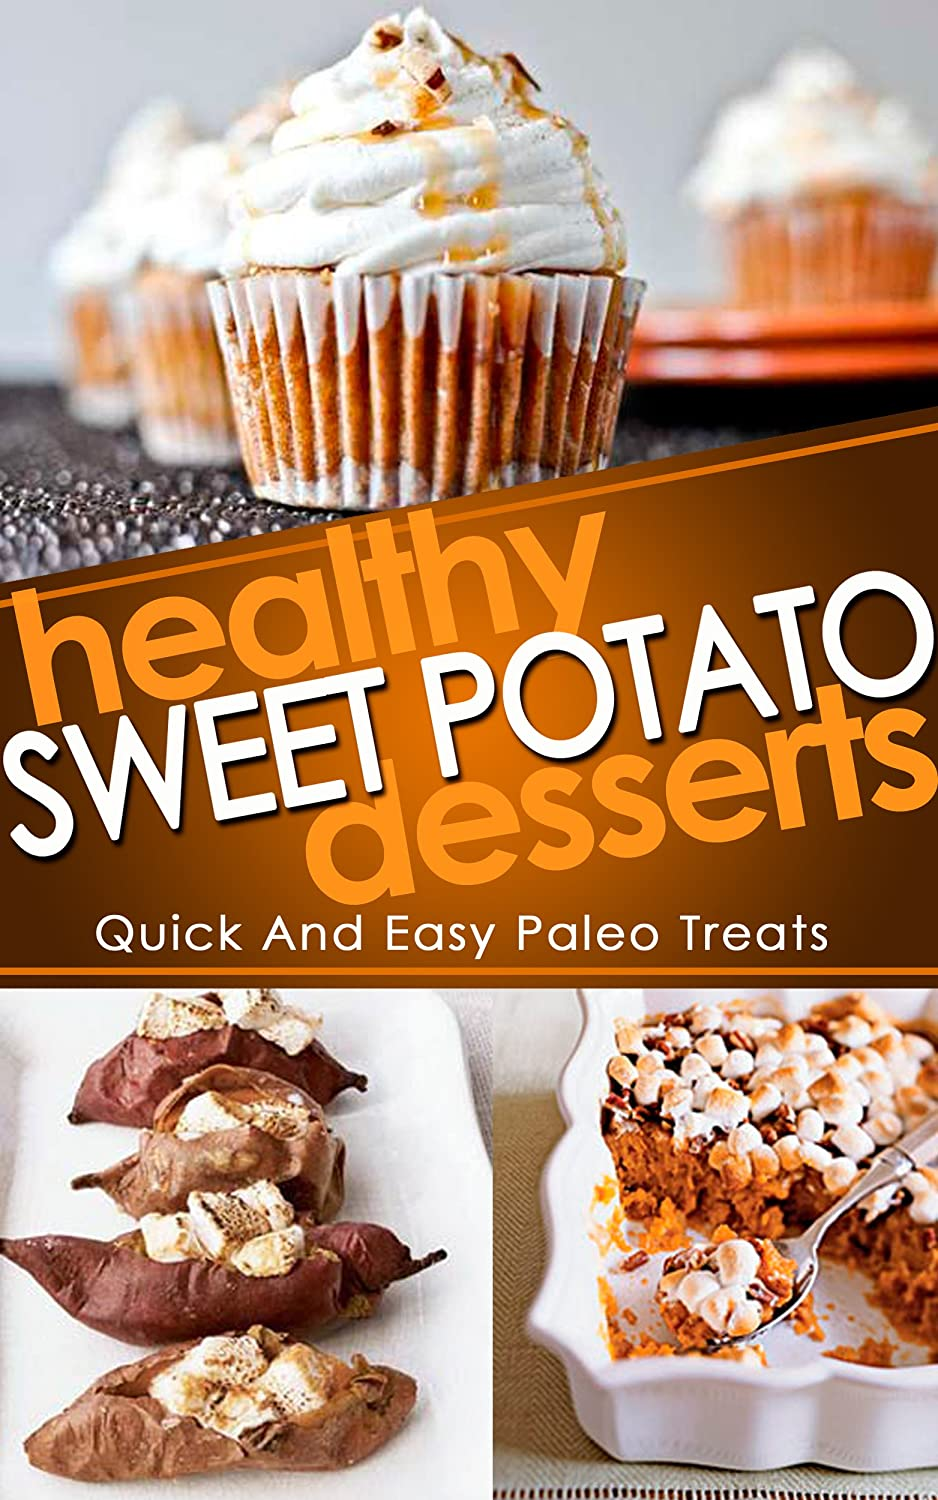 SweetPotatoDesserts